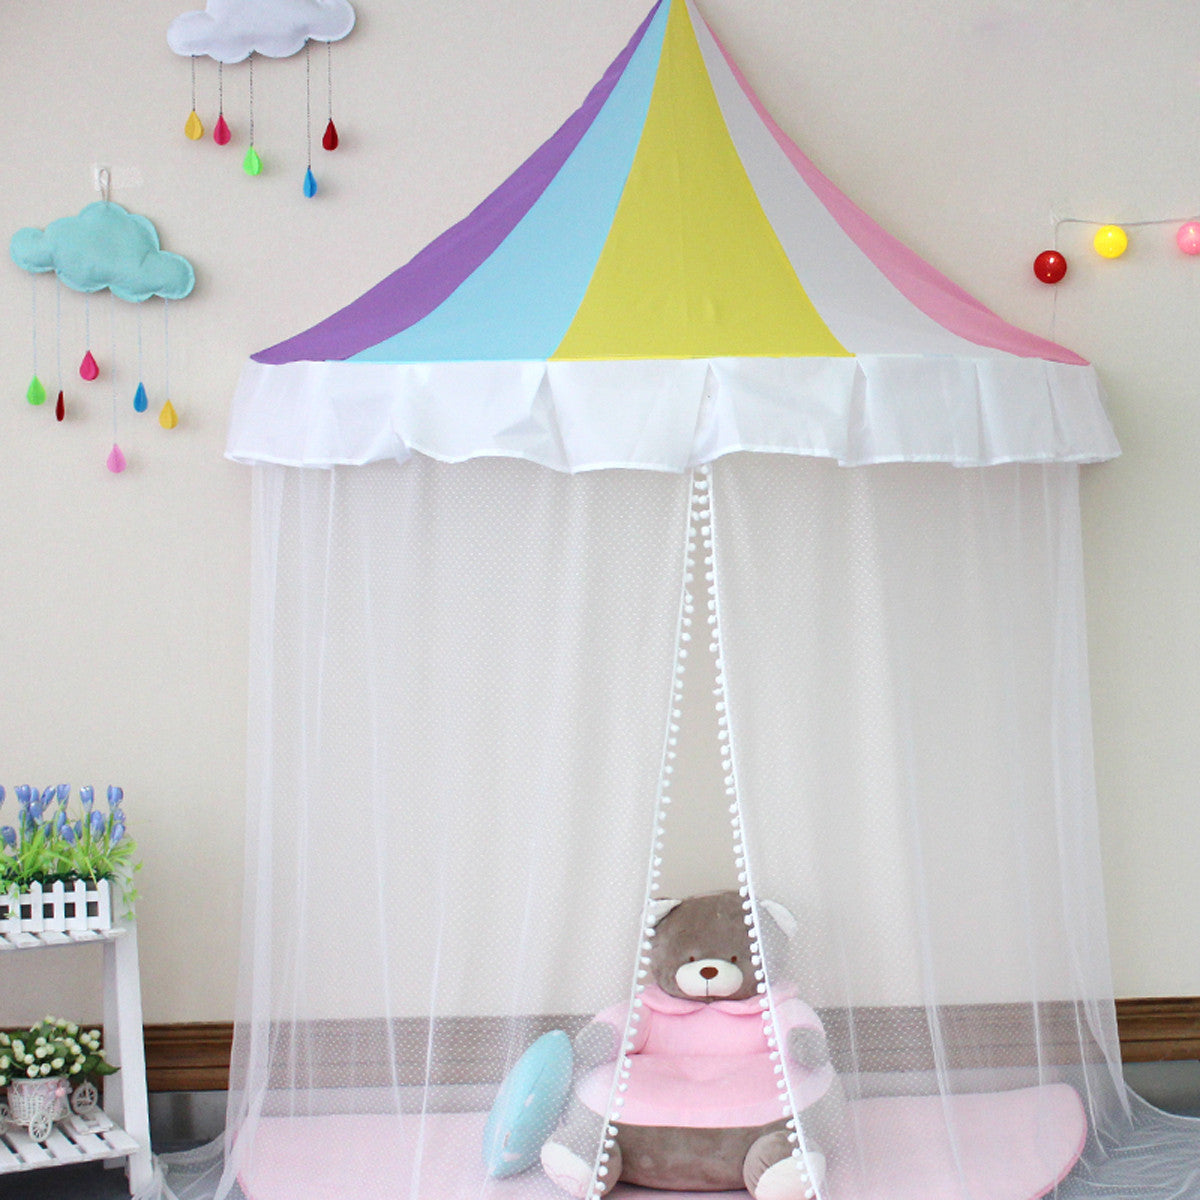 Princess Bed Canopy Reading Corner for Kids Indoor  sc 1 st  TRUEDAYS : corner canopy bed - memphite.com